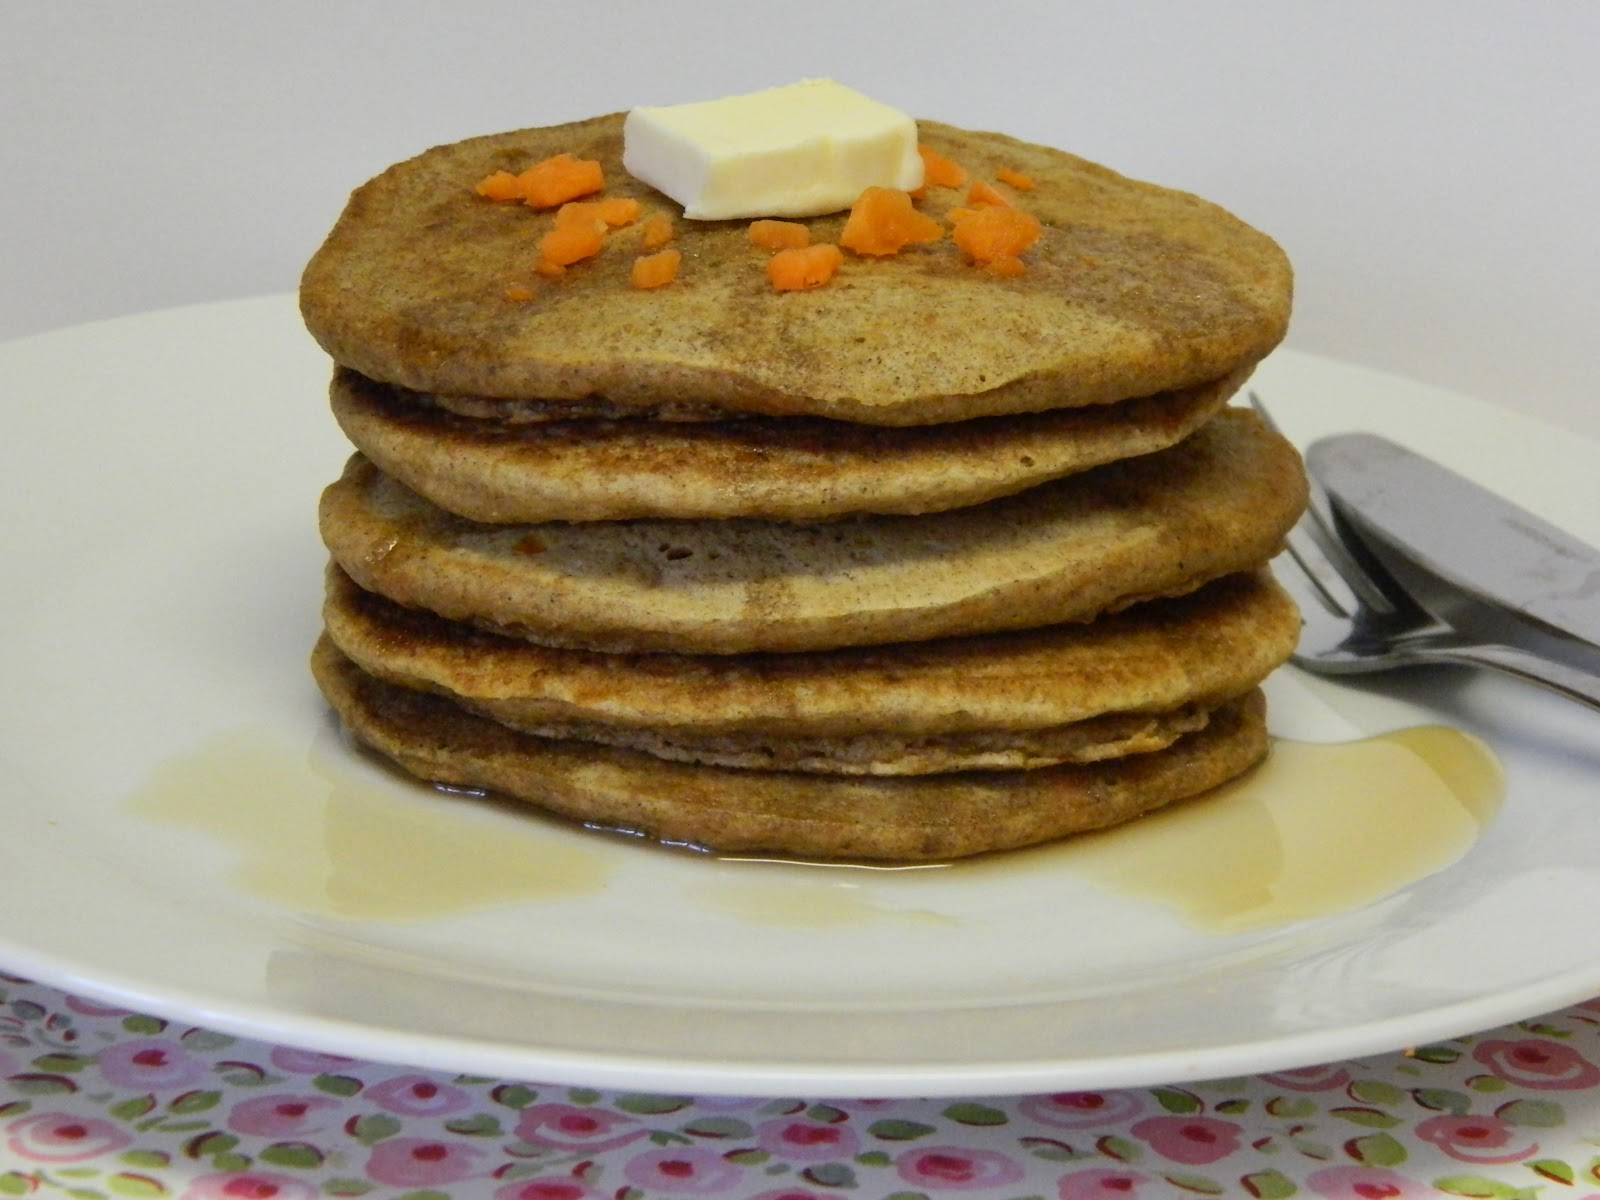 Erica in the City: Whole Wheat Carrot Cake Pancakes